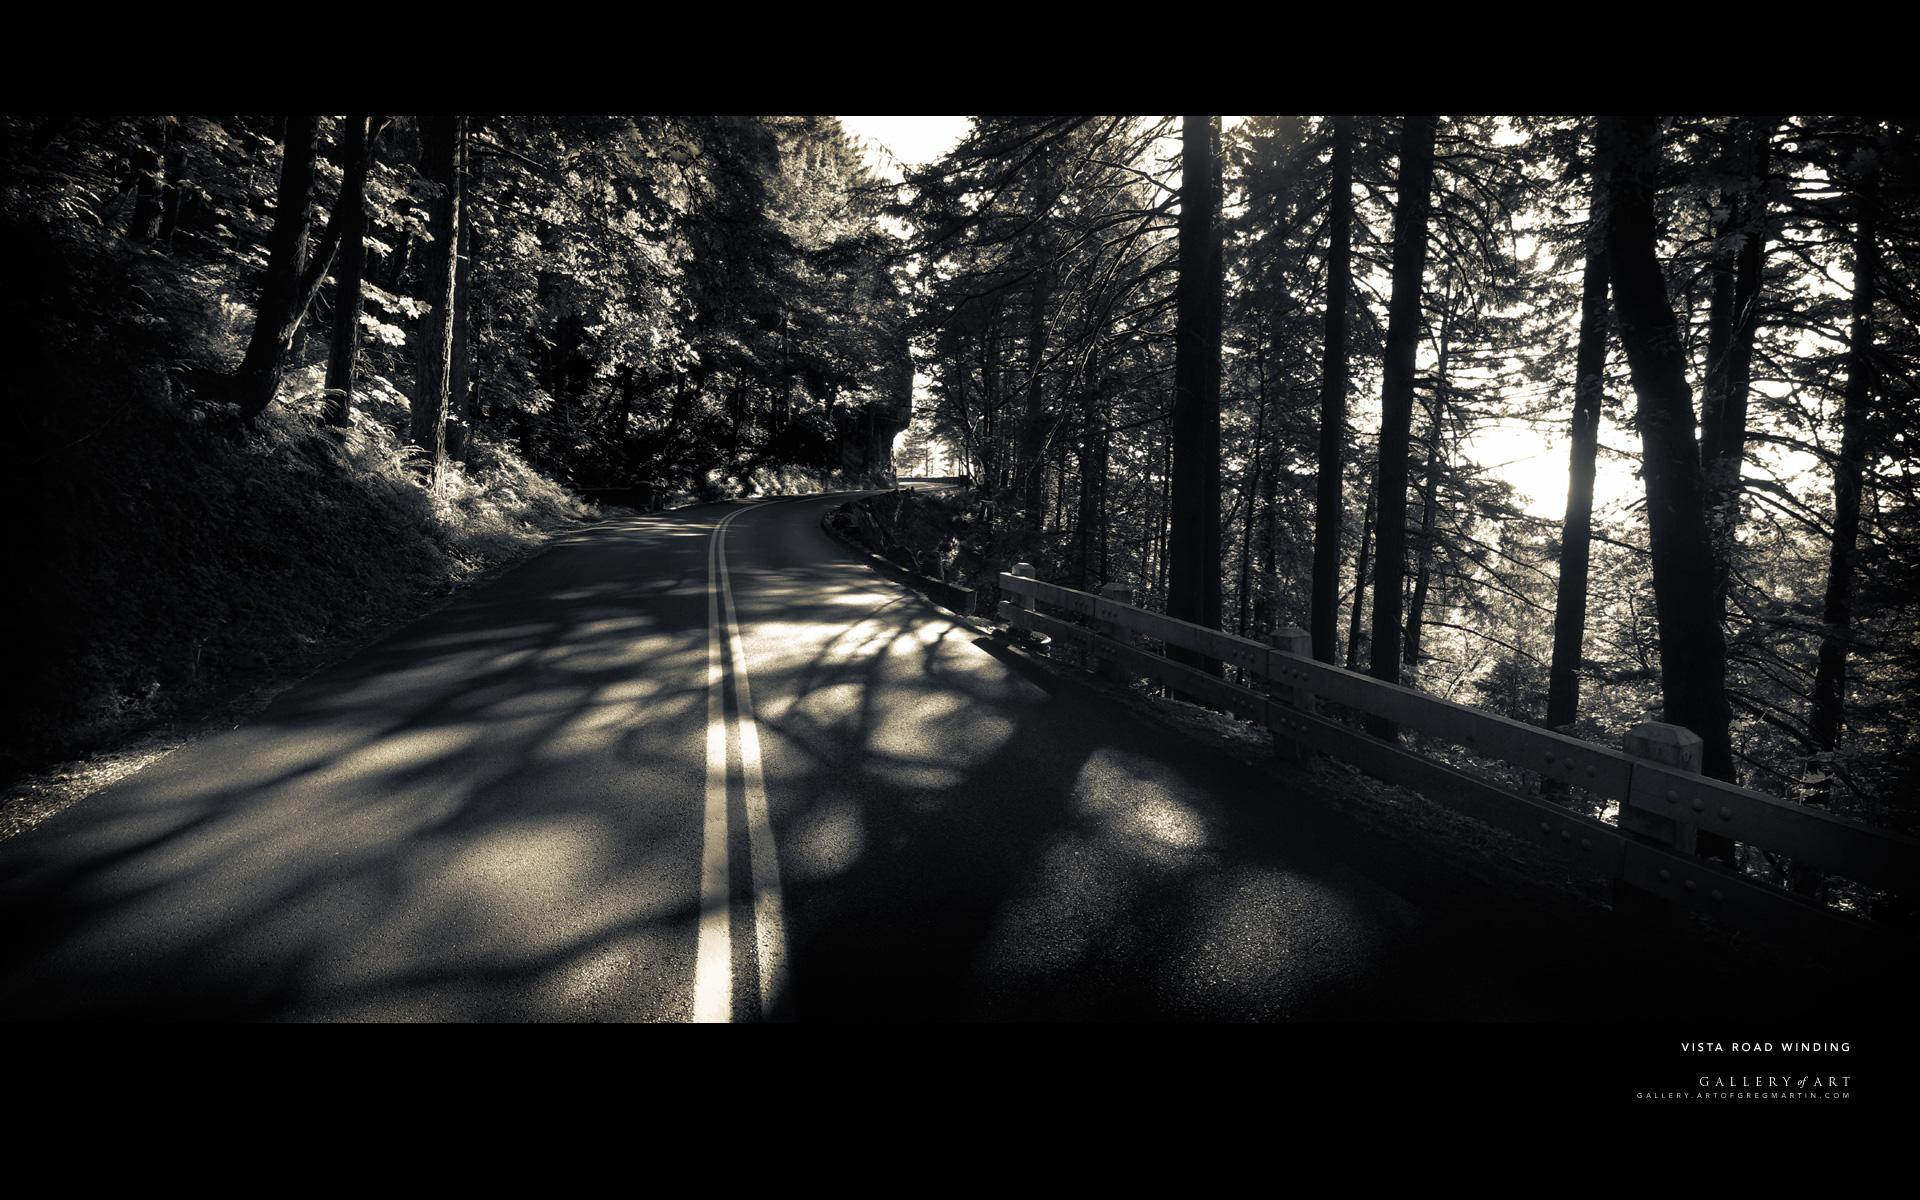 wallpaper-winding-road-images-summer-vista-17965.jpg (1920×1200)